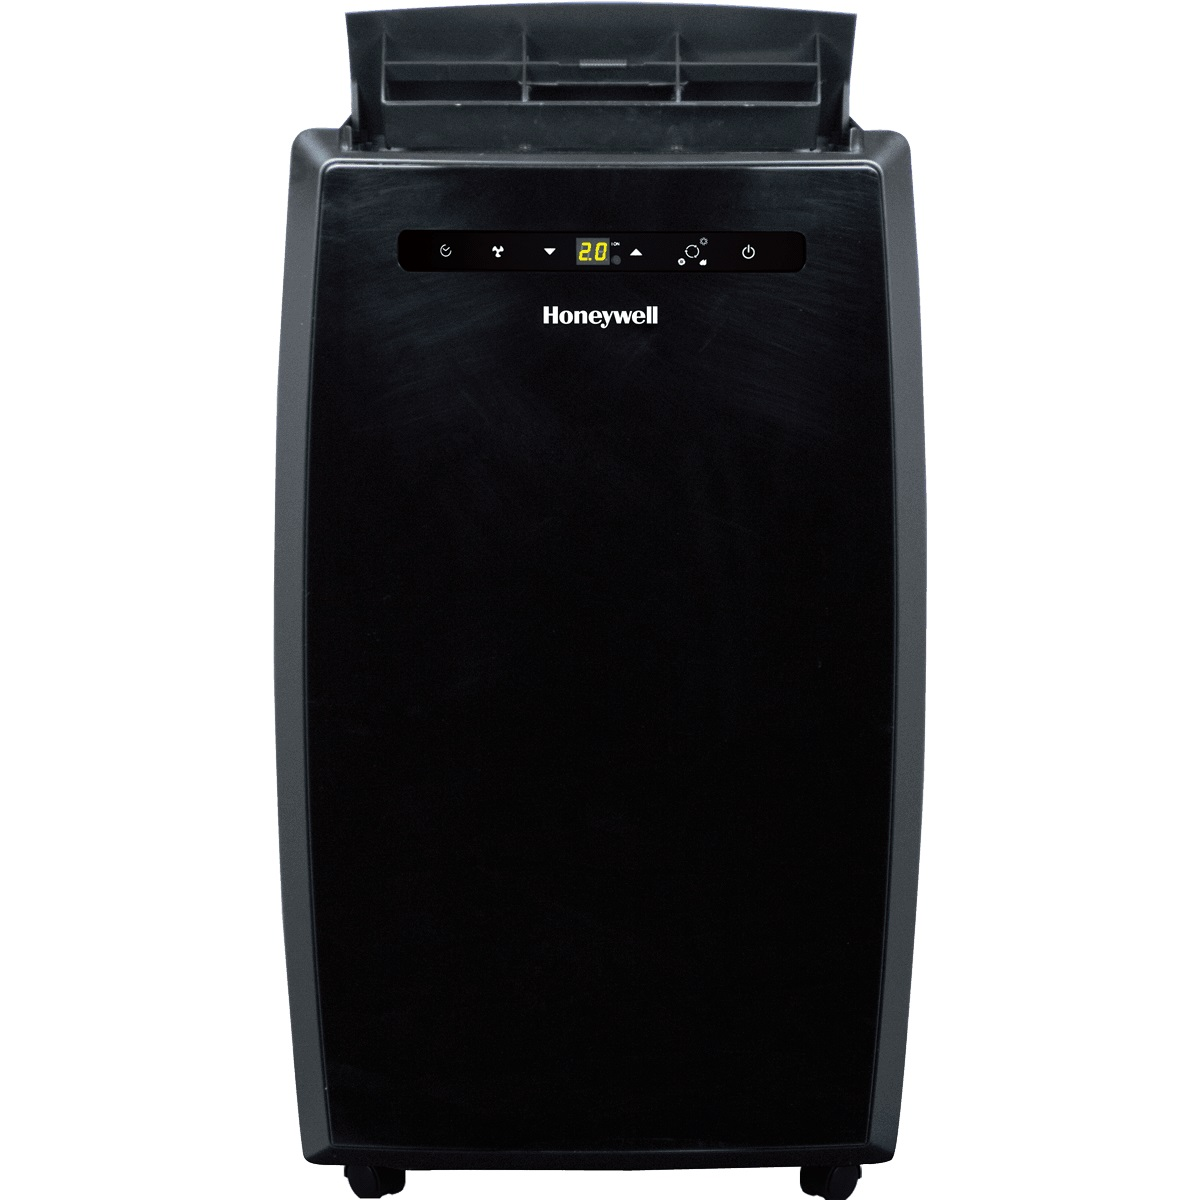 #A5A126 Honeywell MN10CESBB Portable Air Conditioner  Best 10173 Air Conditioner Brands photos with 1200x1200 px on helpvideos.info - Air Conditioners, Air Coolers and more